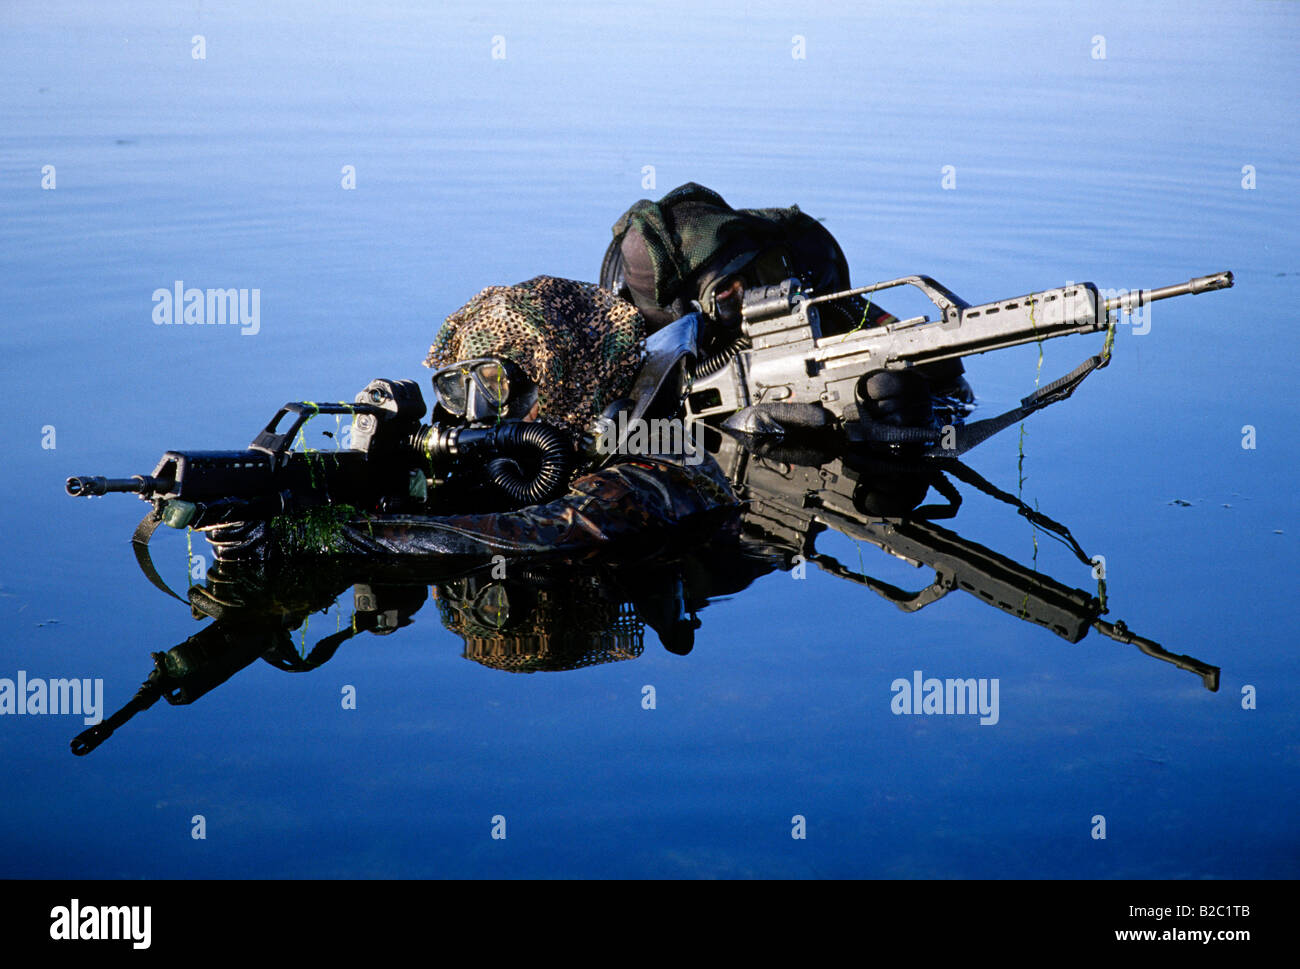 Two soldiers belonging to the Kampfschwimmerkompanie, combat swimmers, special unit of the German Navy practicing - Stock Image